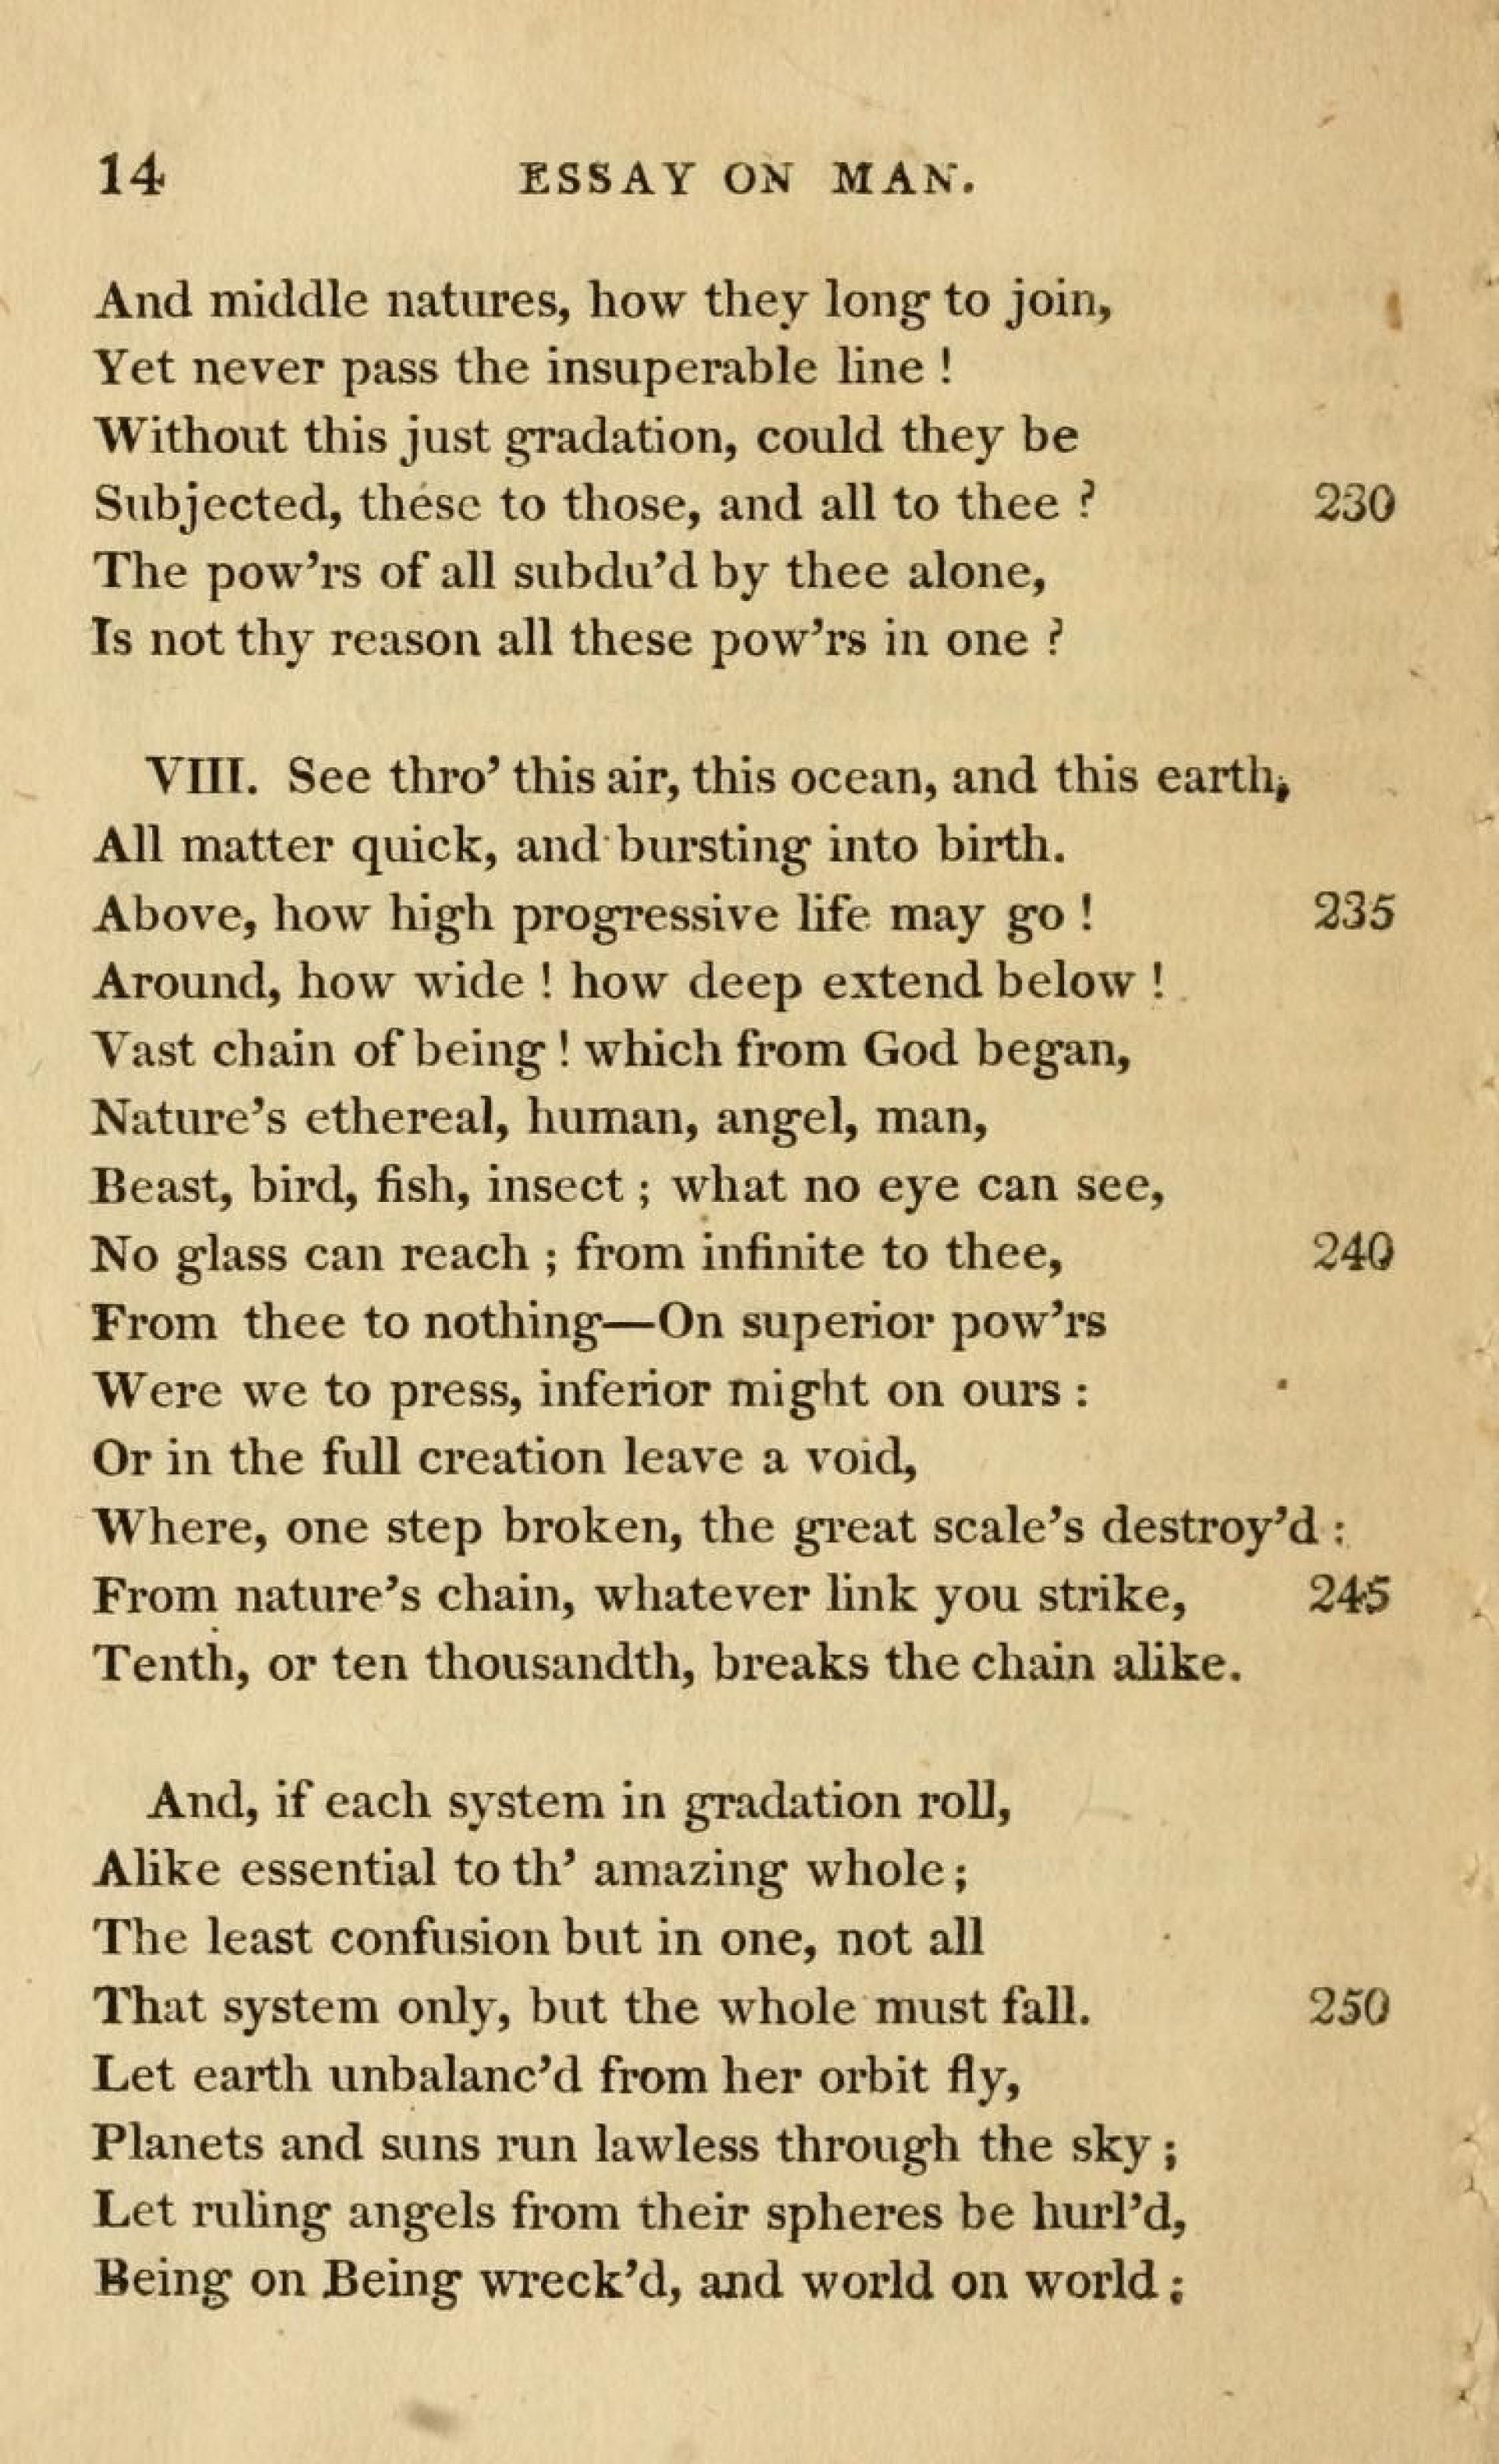 critical appreciation of the poem extract from an essay on man